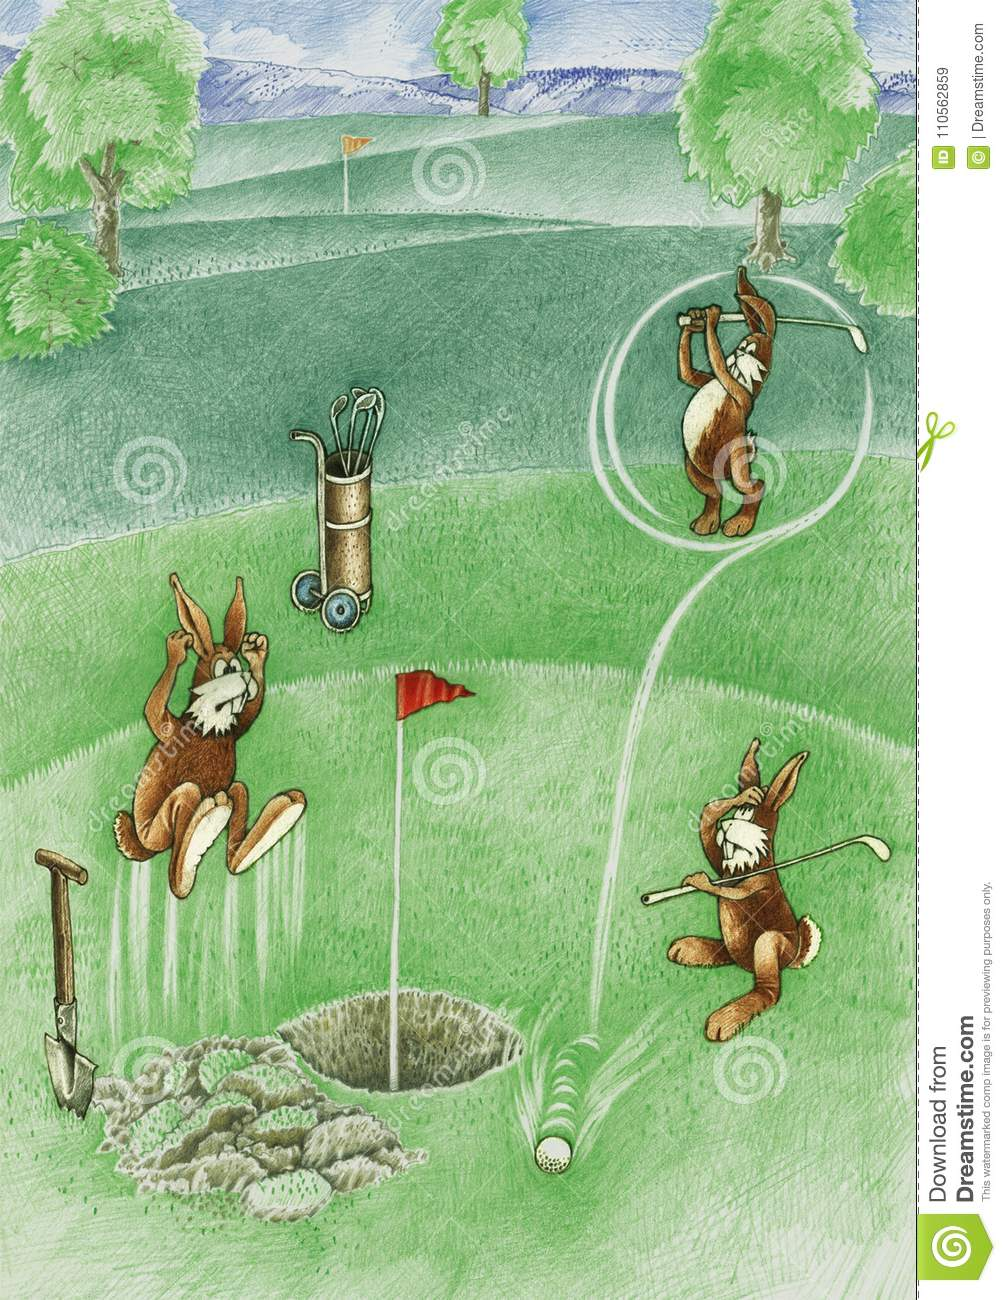 Hares are playing the golf stock illustration. Illustration of golf on lion on golf course, lamb on golf course, monkey on golf course, eagle on golf course, coyote on golf course, baboon on golf course, cow on golf course, gopher on golf course, helicopter on golf course, kangaroo on golf course, fox on golf course, bear on golf course, elk on golf course, fish on golf course, pigs on golf course, geese on golf course, ram on golf course, raccoons on golf course, deer on golf course, rattlesnake on golf course,